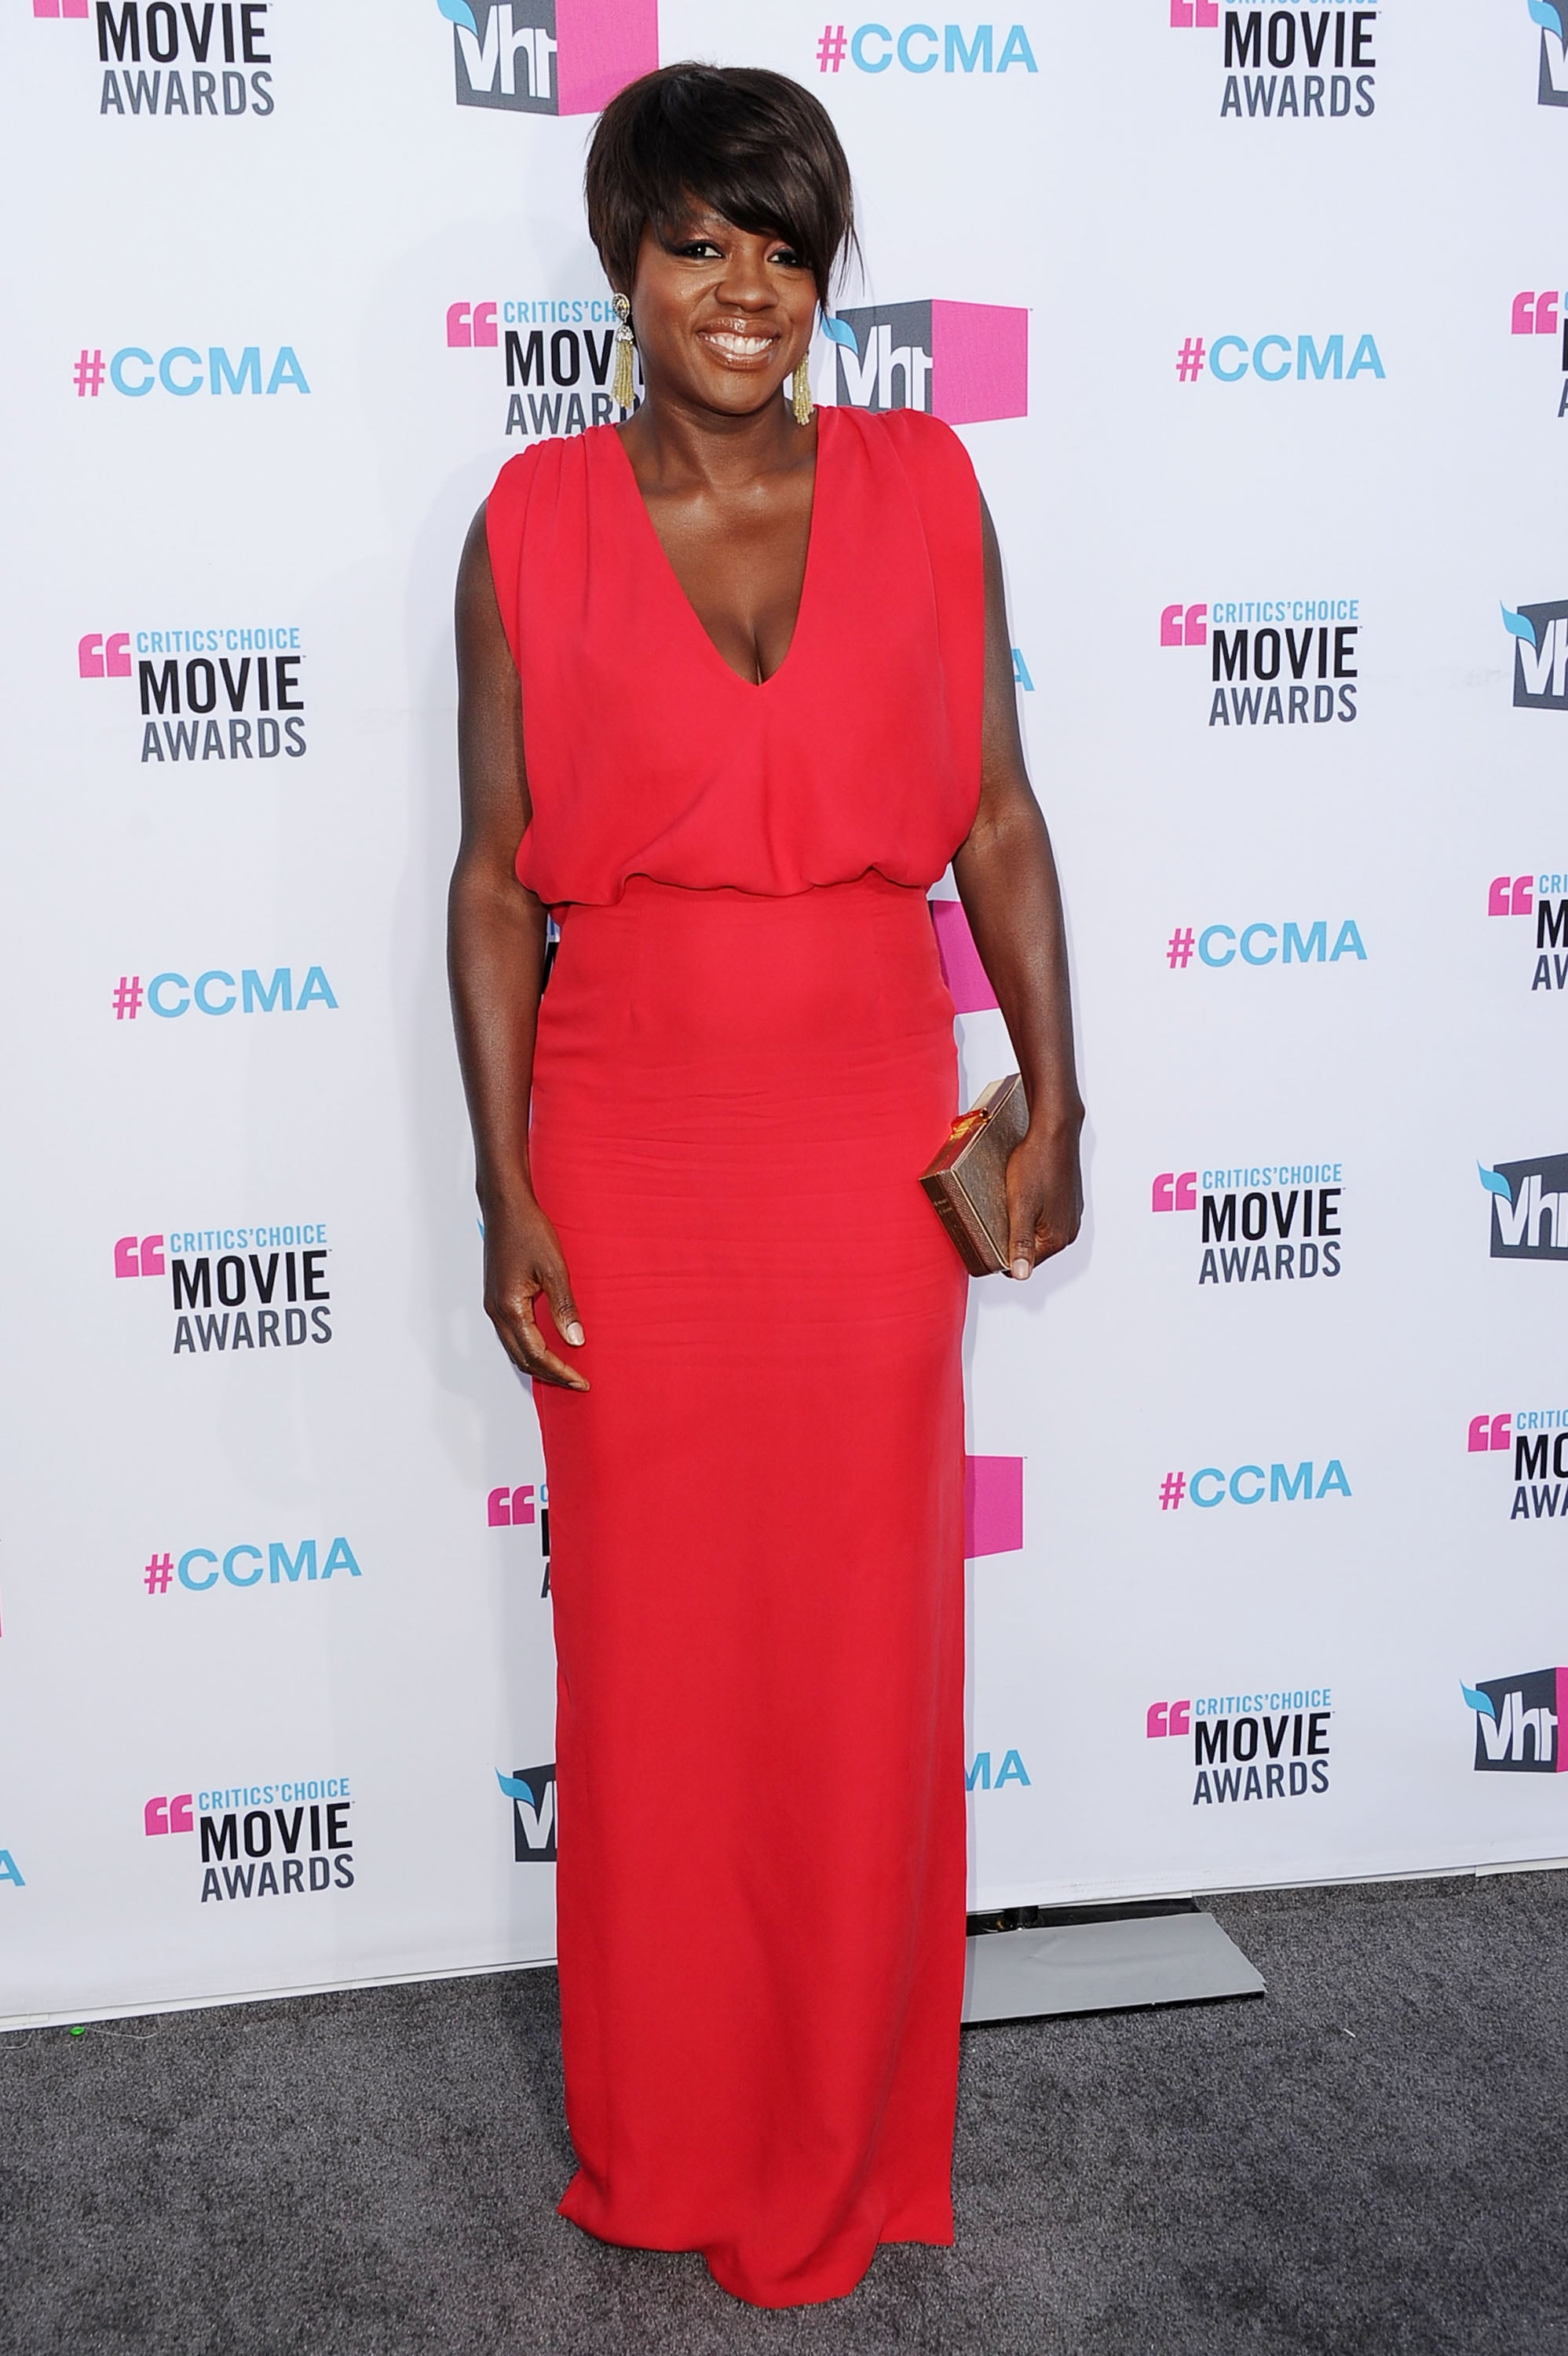 Viola Davis at the 2012 Critics' Choice Movie Awards.